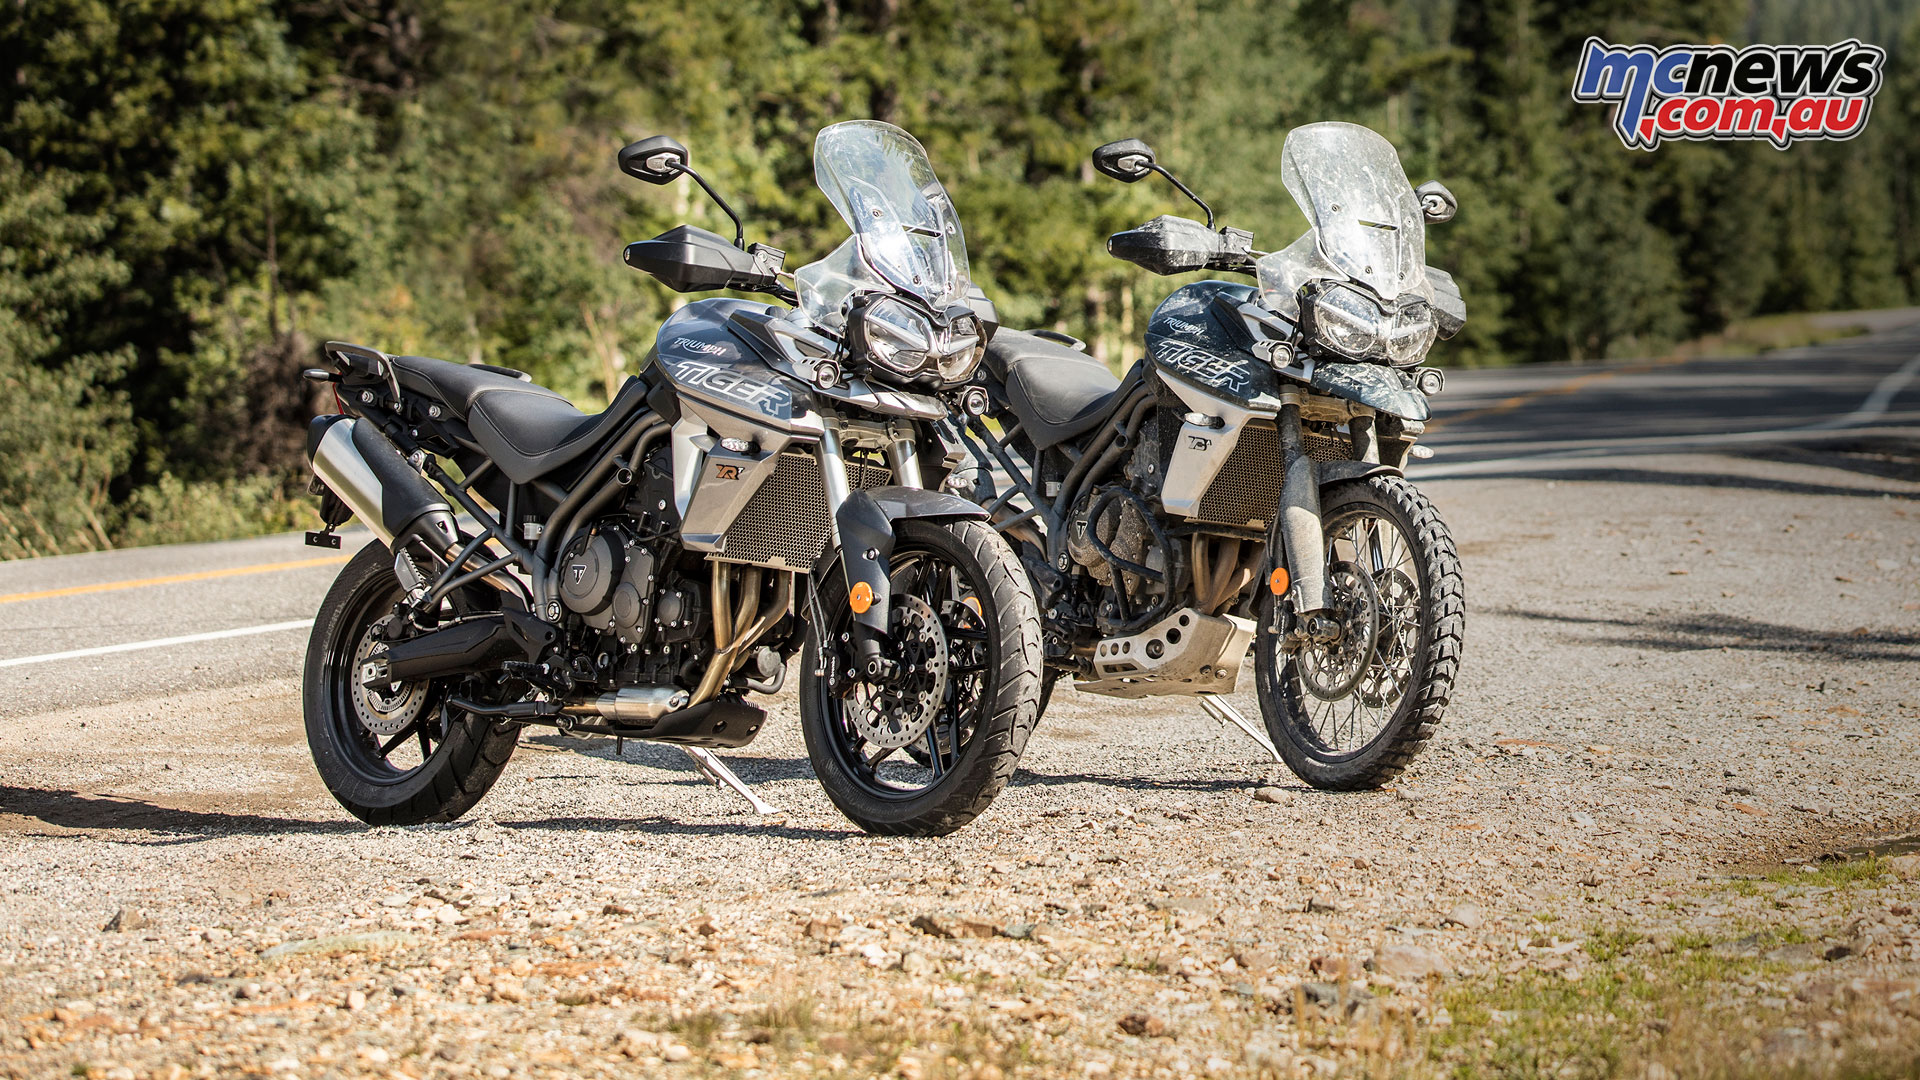 2018 Triumph Tiger 800 Pricing And Range Mcnewscomau